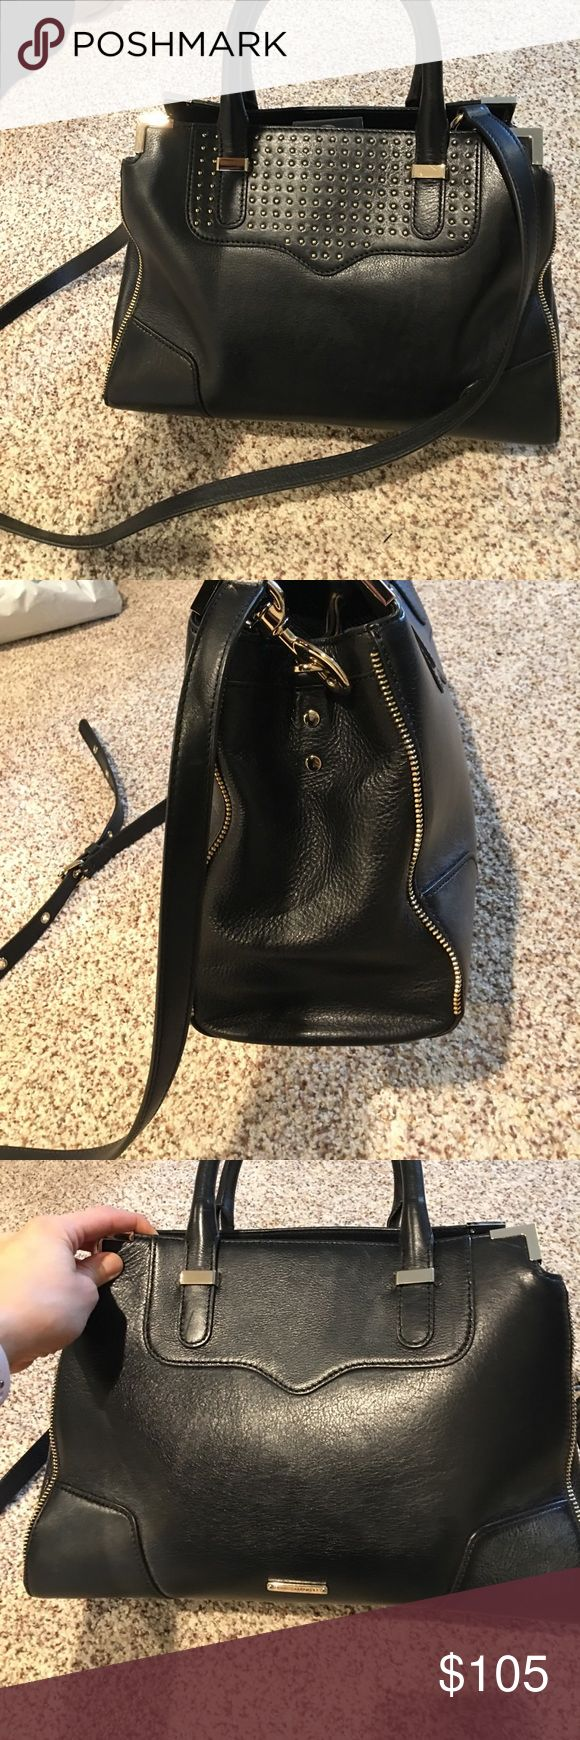 Rebecca Minkoff studded crossbody/shoulder handbag Purchased From Nordstrom's on anniversary sale, normally $300, I paid $220. It's perfect exterior and interior except for bottom of bag which had some white fog on it? I think it just needs a little leather cleaner or polish. I haven't tried fixing it. It's a gorgeous bag with zipper details on side and studs on front. Prices well and pictures to show bottom of bag. Ask any questions! Dust bag is included!💗 Rebecca Minkoff Bags Crossbody…